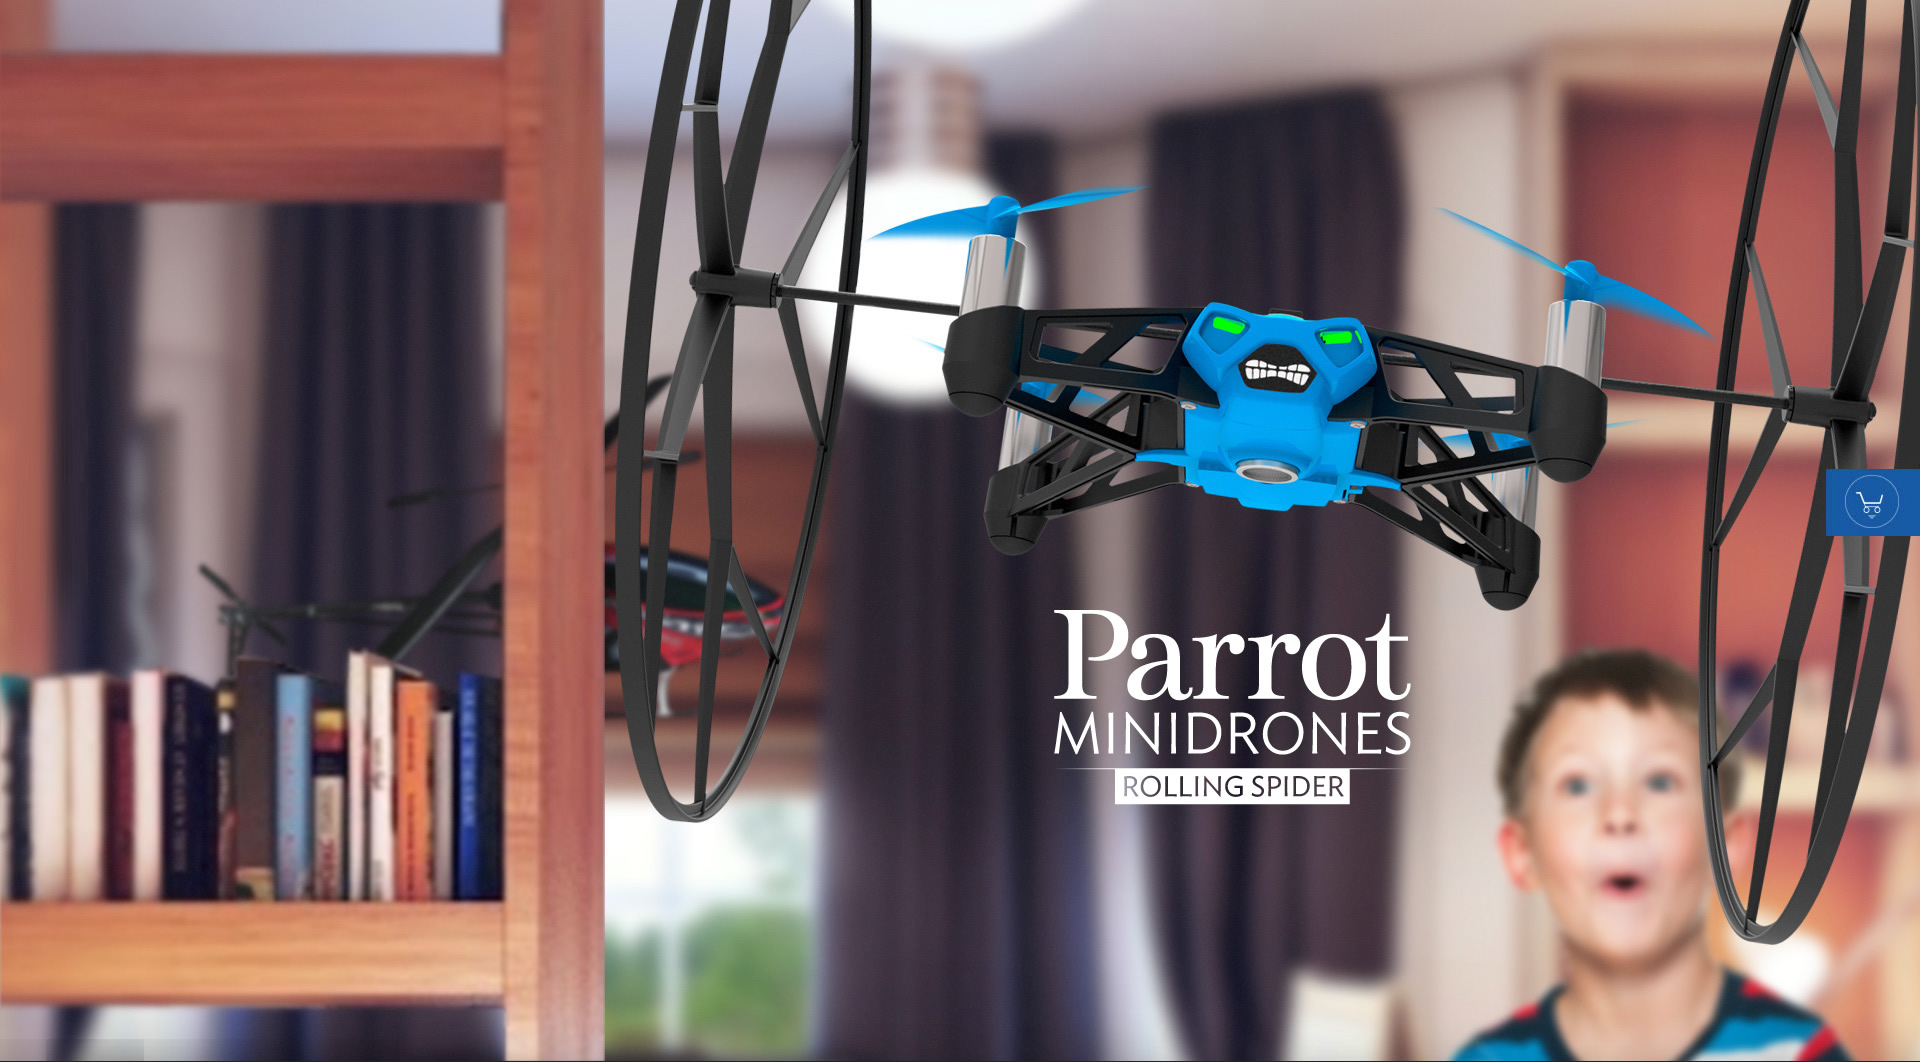 Dronele Parrot Rolling Spider și Jumping Sumo, disponibile la Orange